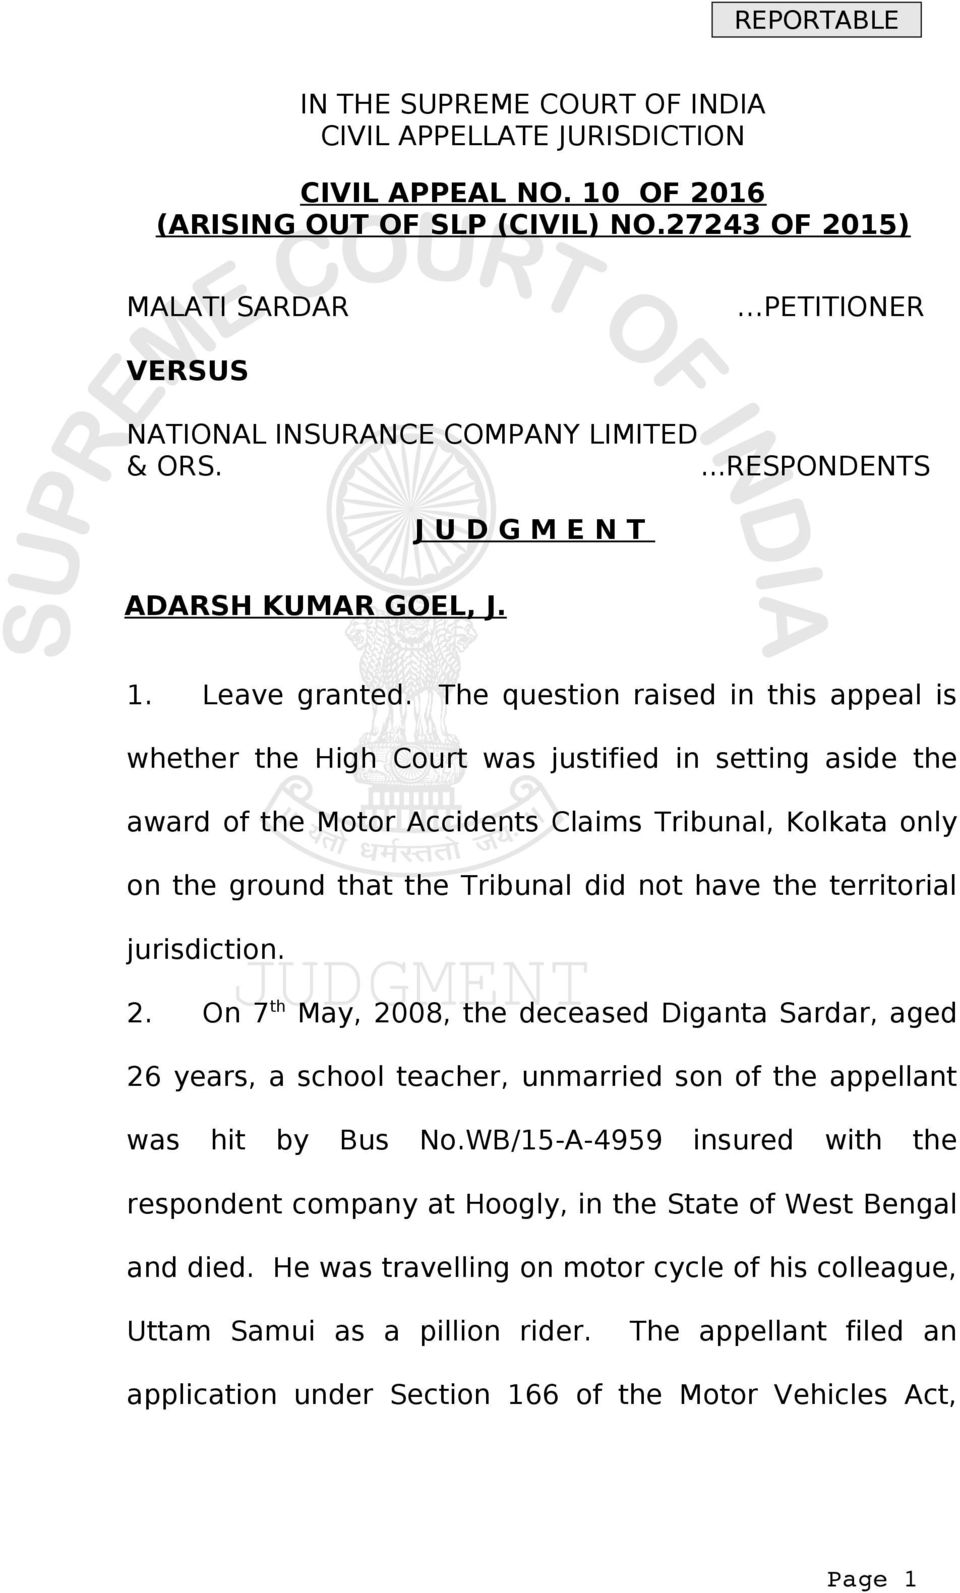 The question raised in this appeal is whether the High Court was justified in setting aside the award of the Motor Accidents Claims Tribunal, Kolkata only on the ground that the Tribunal did not have